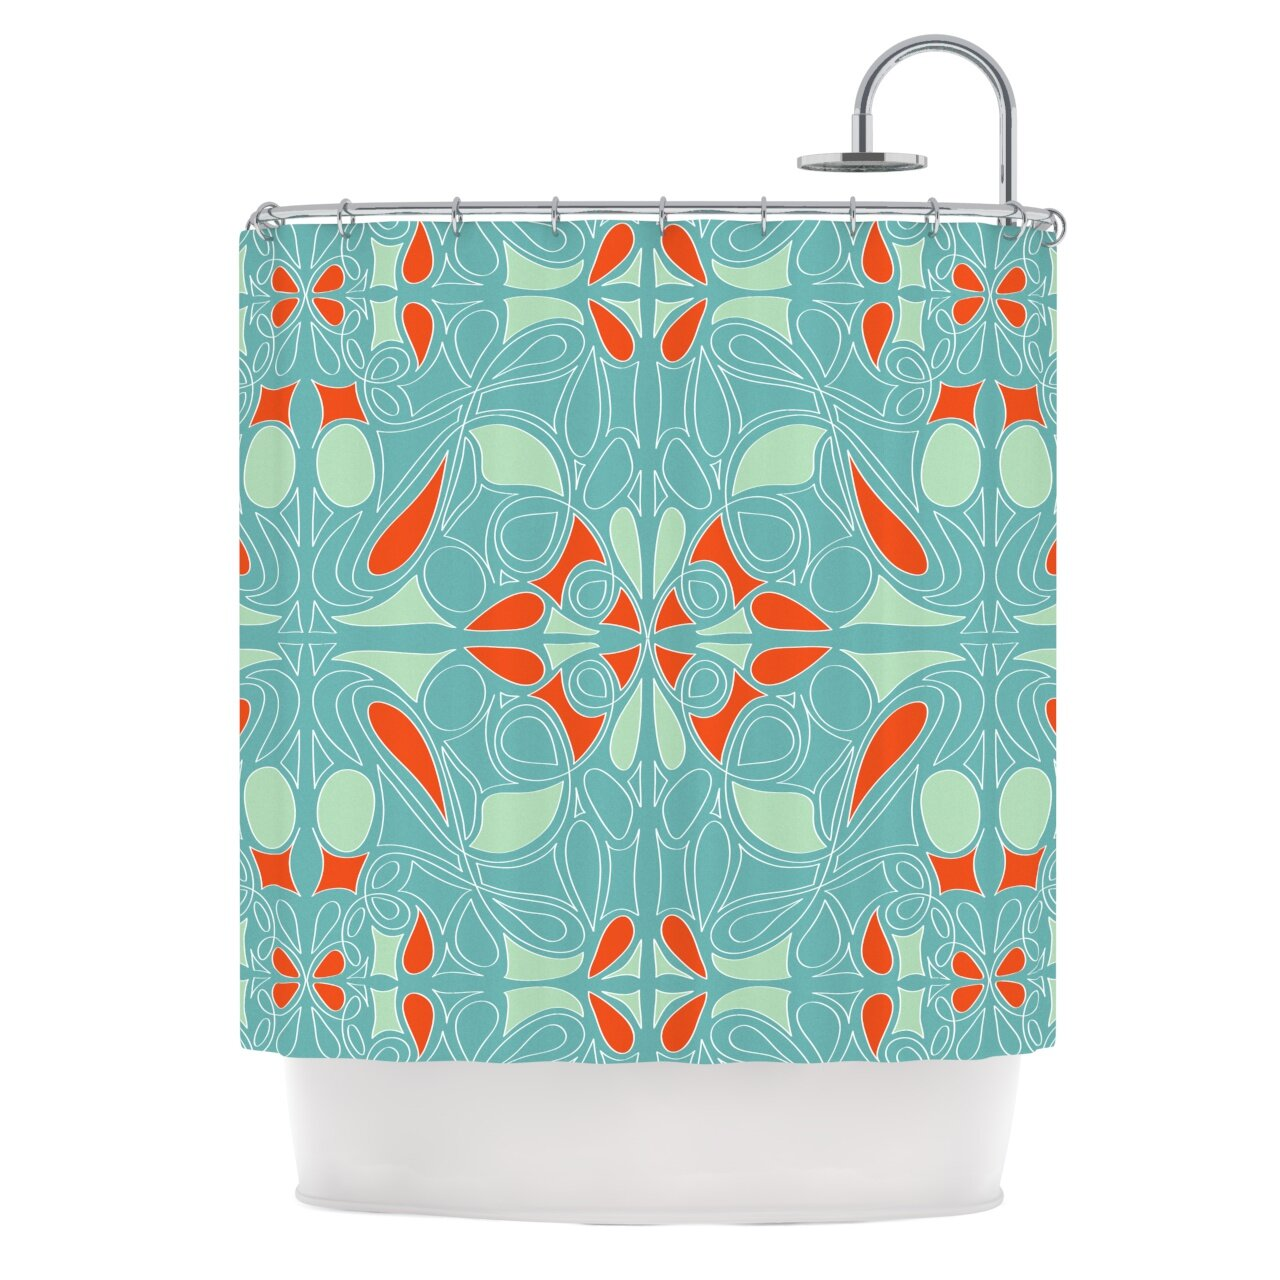 Blue ruffled shower curtains - Country Ruffled Shower Curtains Light Turquoise Shower Curtain Country Ruffled Shower Curtain Kess Inhouse Seafoam